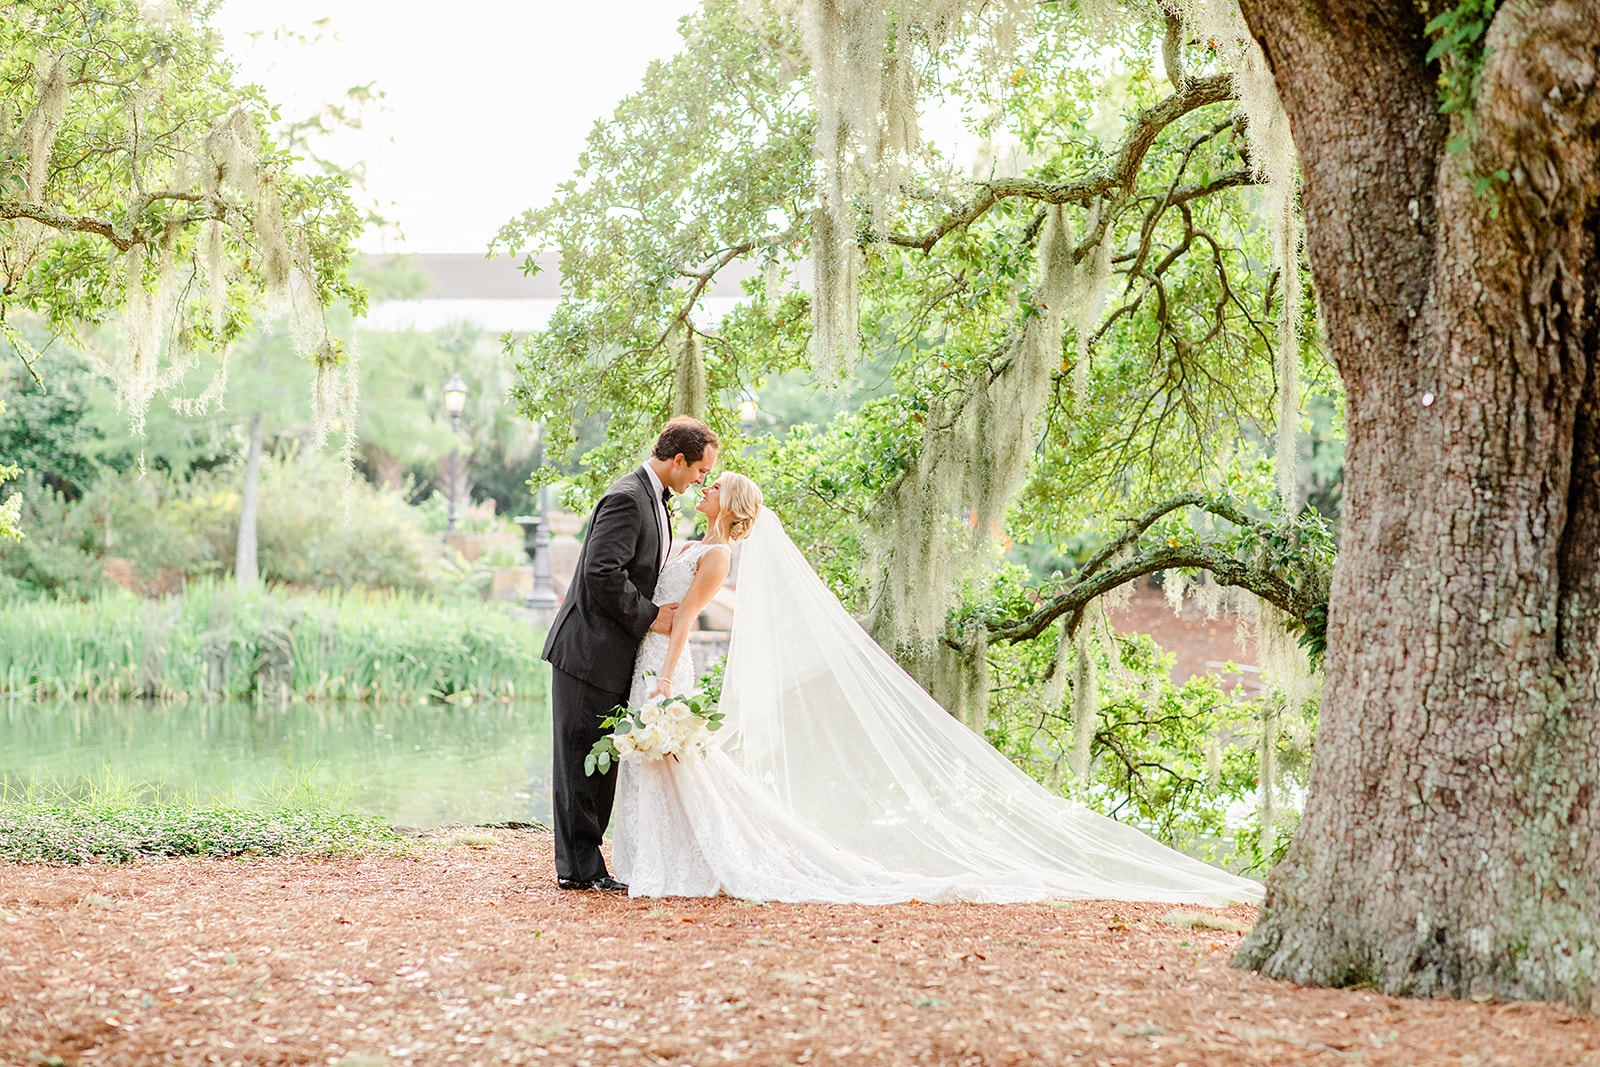 Blush-Black-Tie-Wedding-at-the-Grand-Hotel-in-Point-Clear-Alabama-Anna-Filly-Photography-Cross-Wedding-Bride_+_Groom-36.jpg